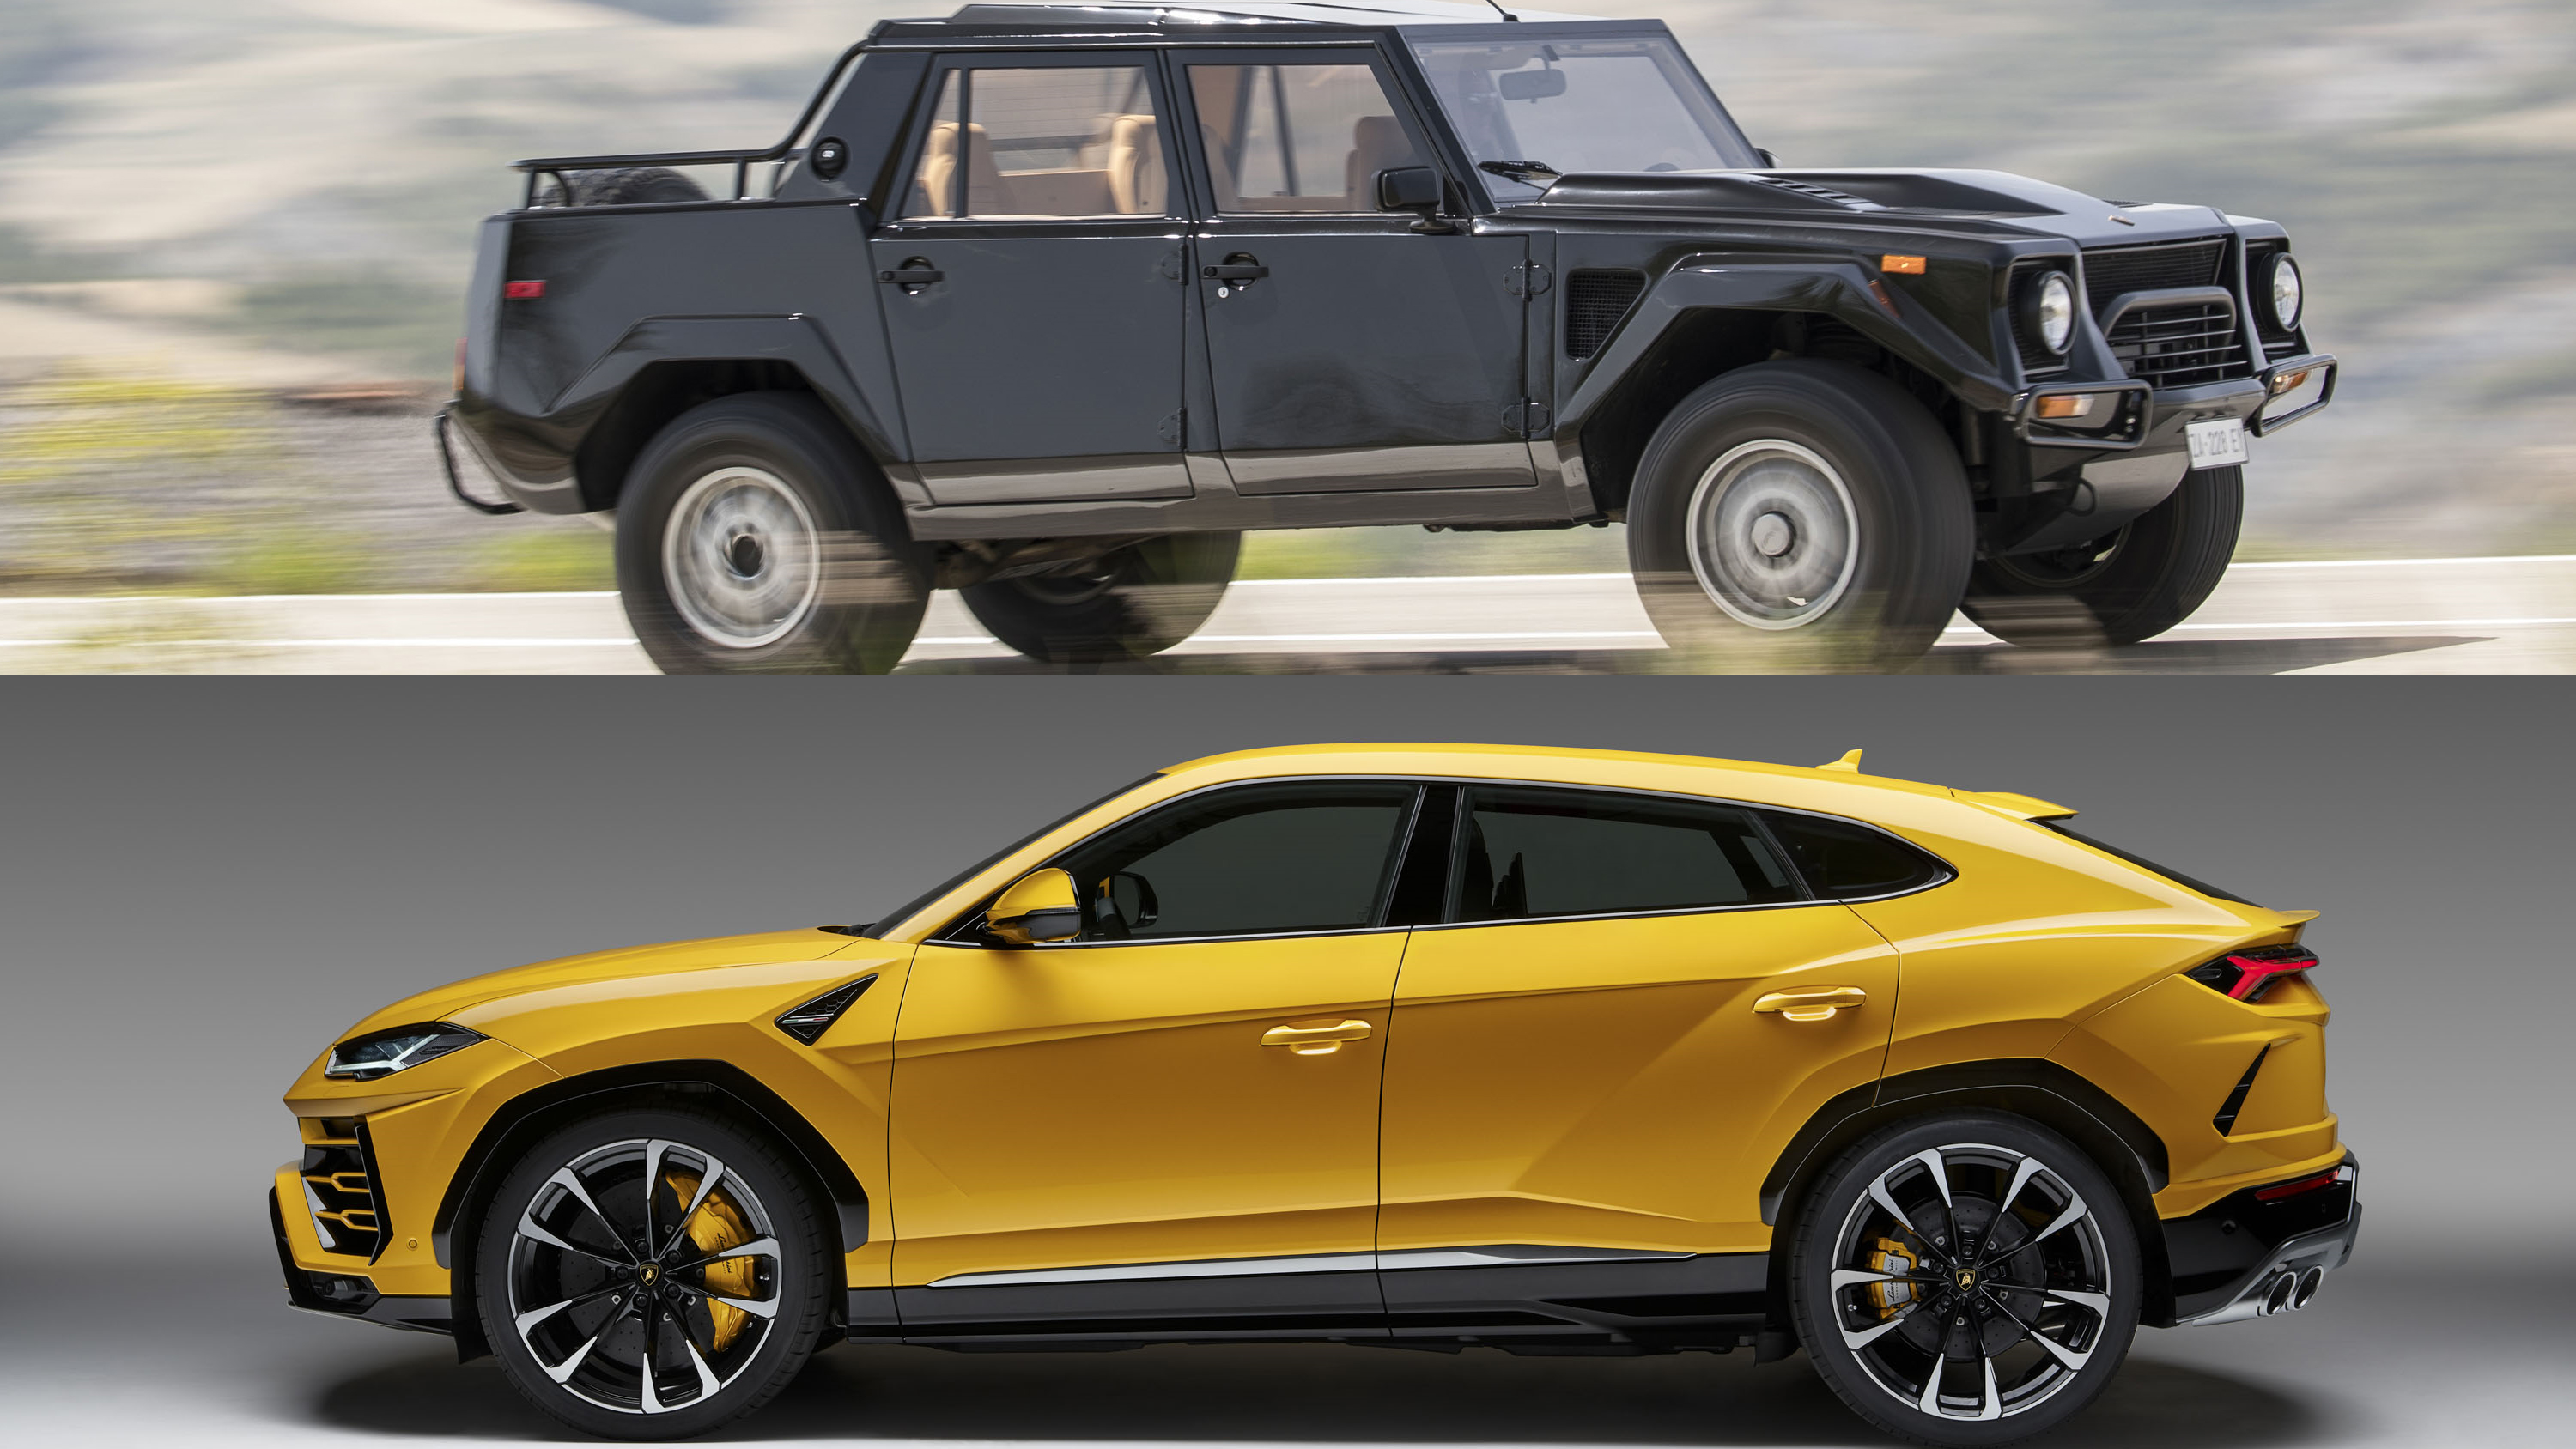 Top Car Designs >> Urus Vs. LM002: Lambo's Utility Vehicles - 30 Years Apart | Top Speed